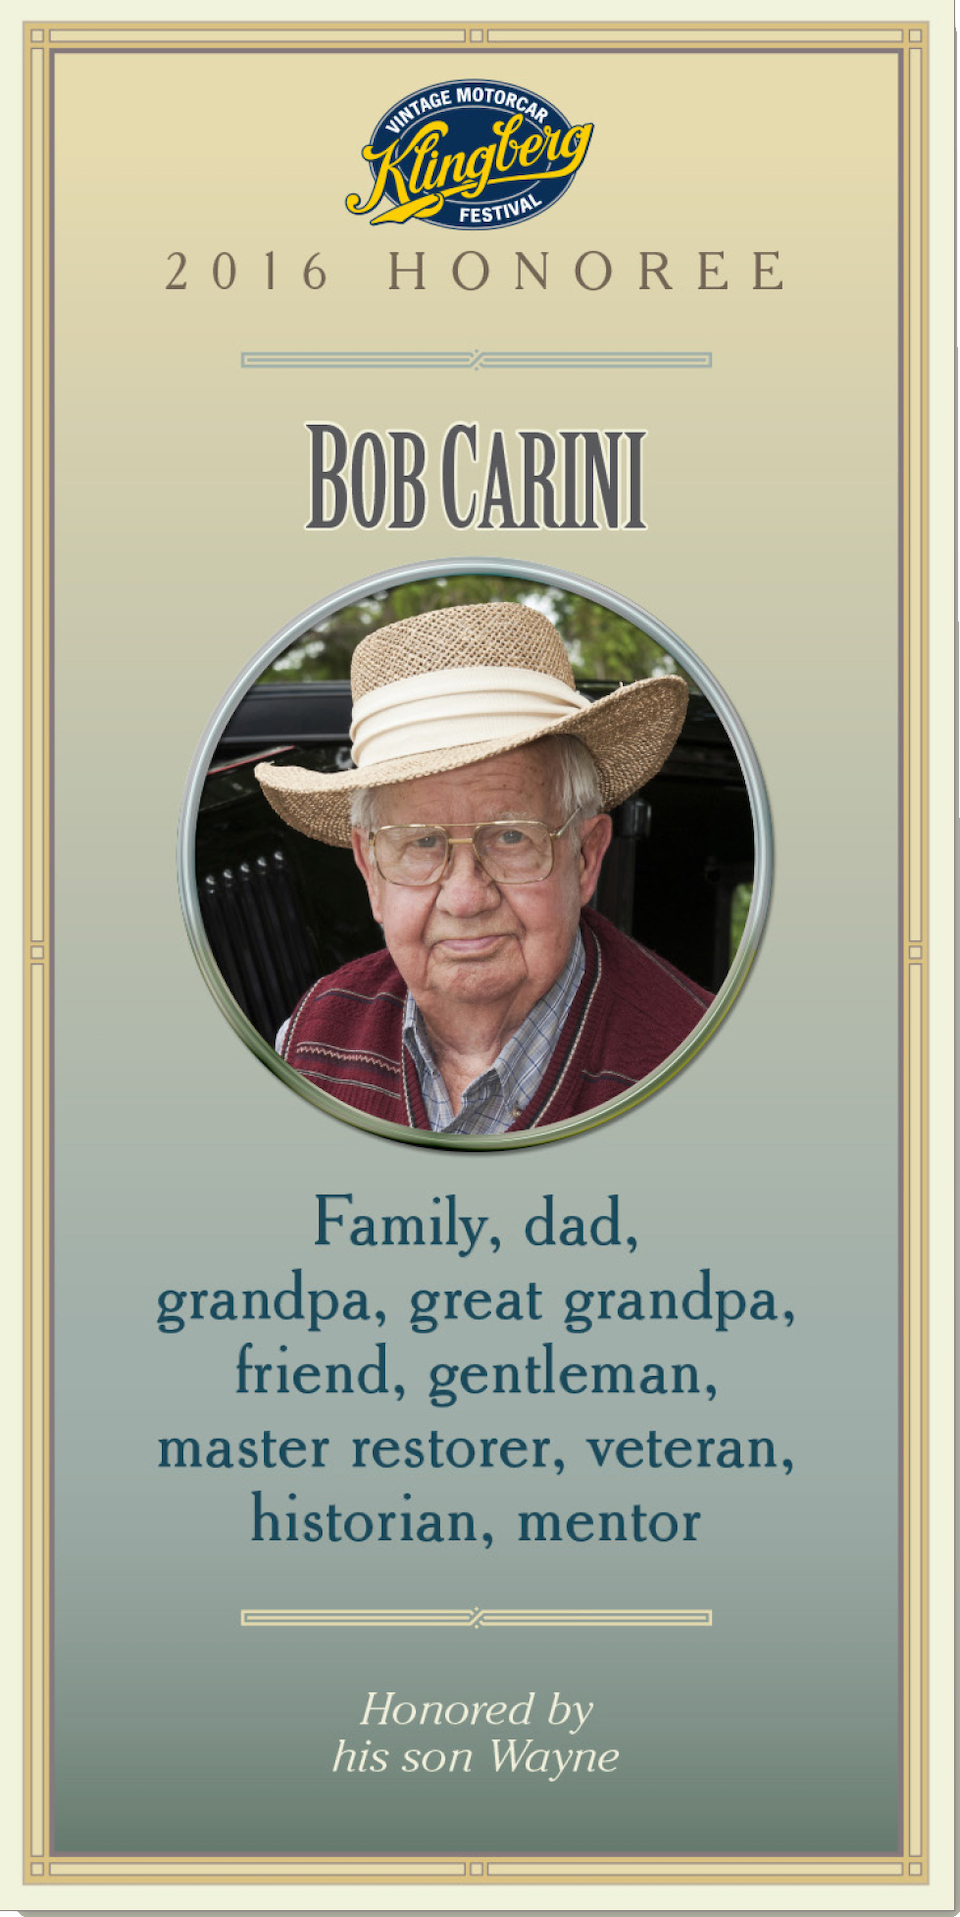 honor-bob-carini